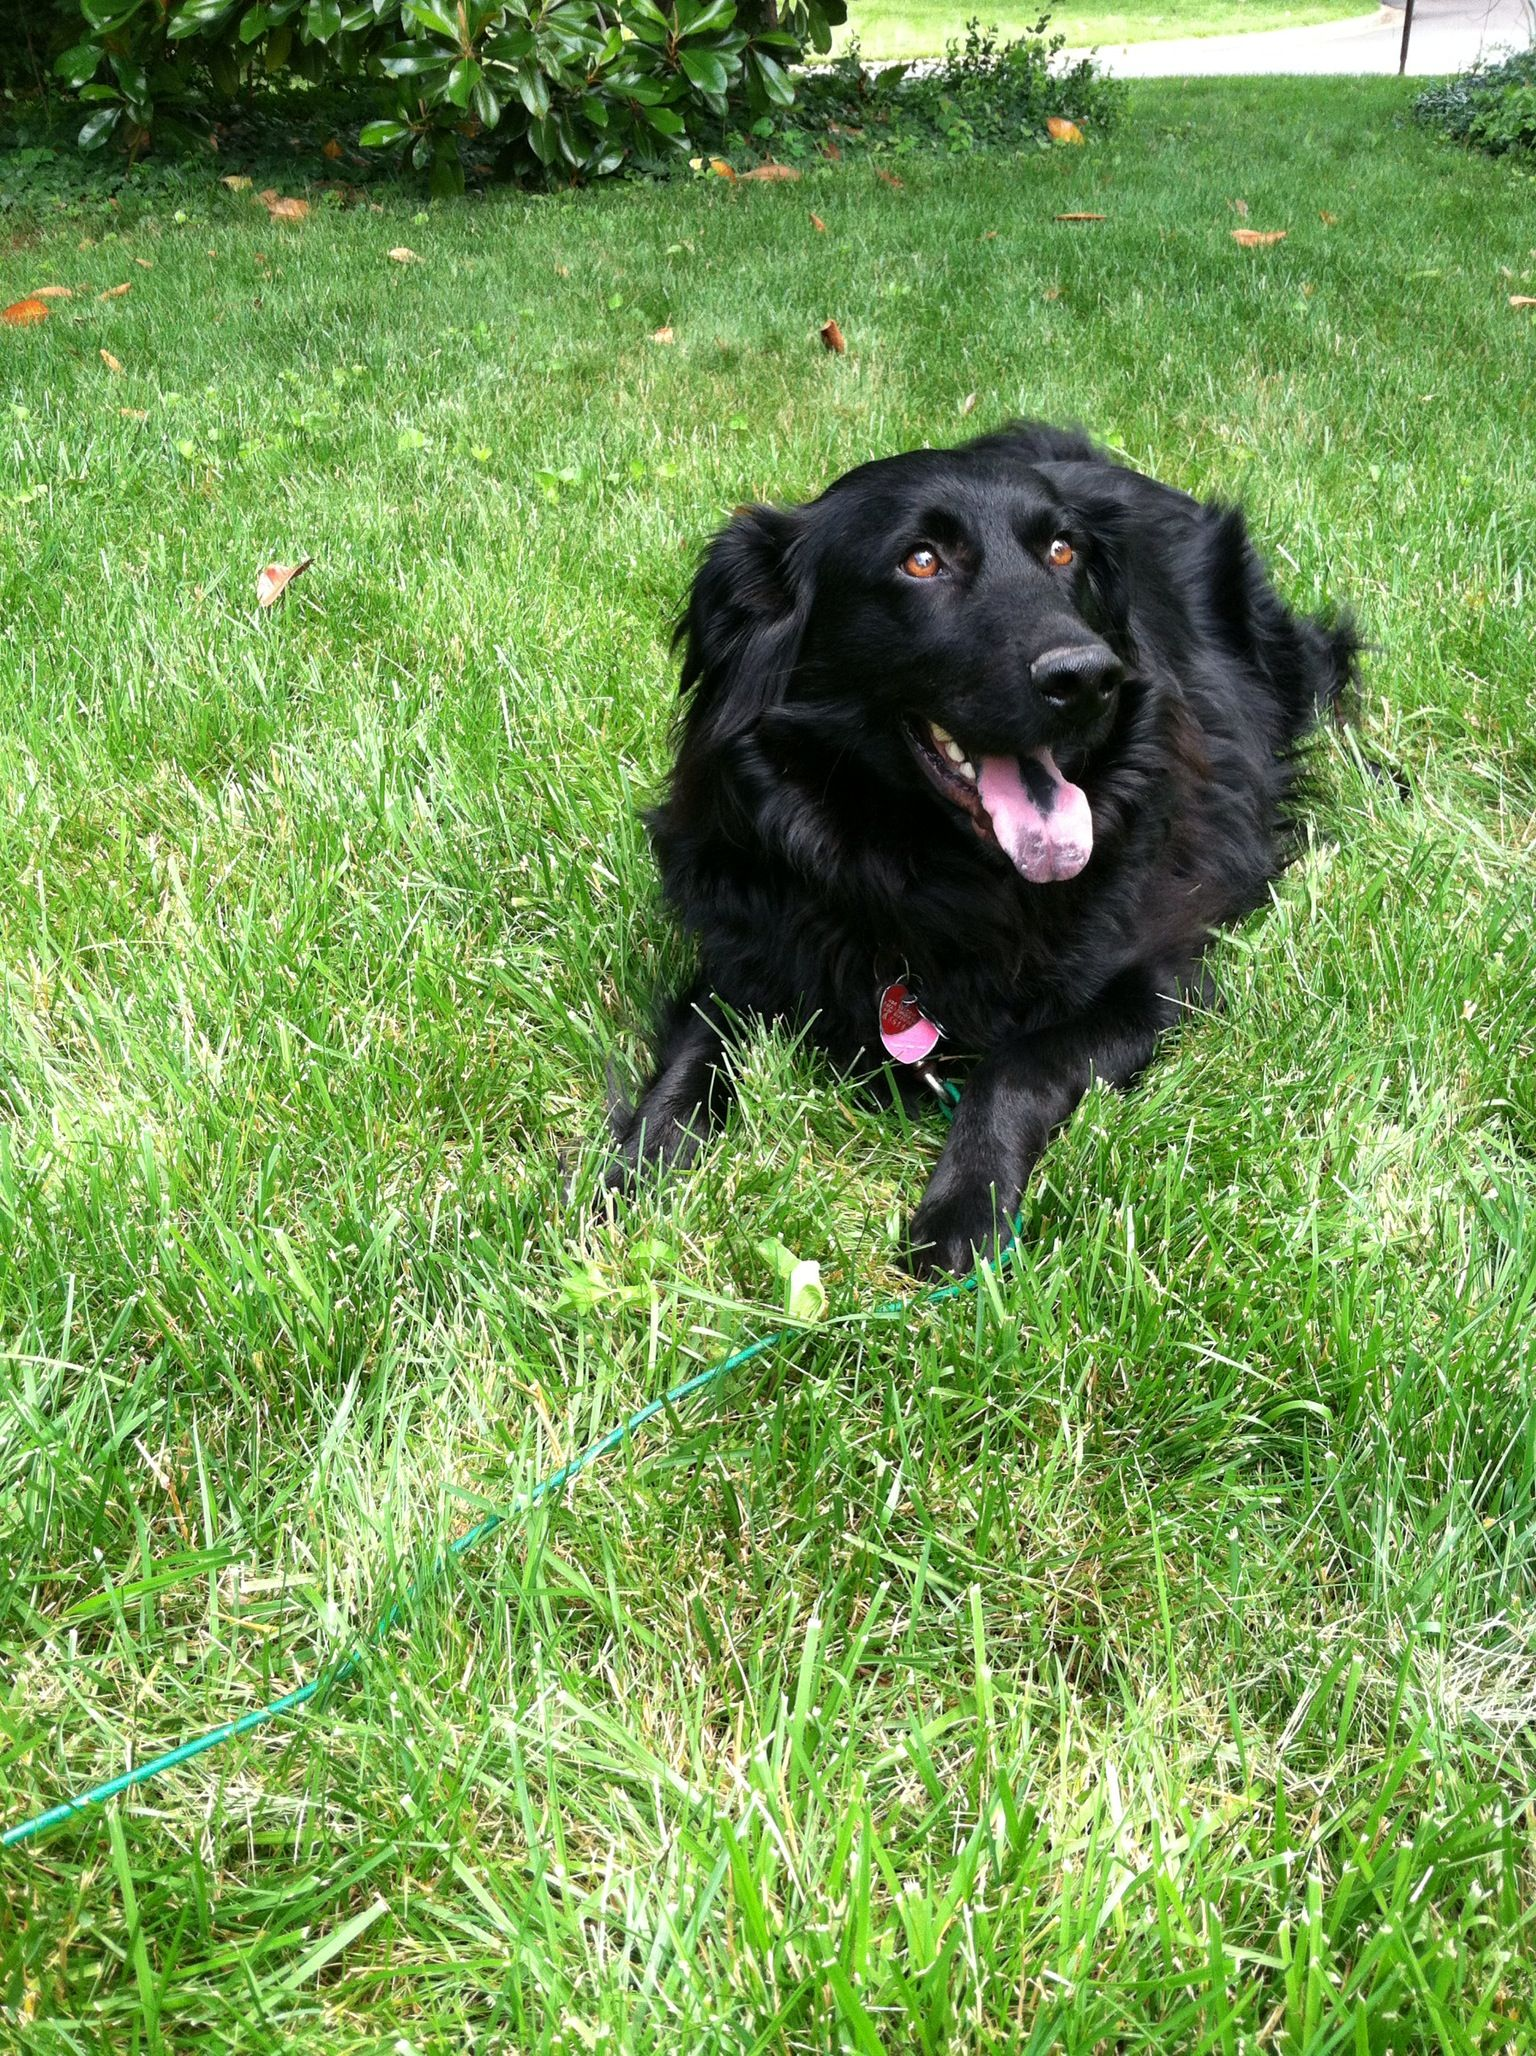 Bear Our Flat Coated Retriever Border Collie Mix Sleeping Dogs Raining Cats And Dogs Dogs